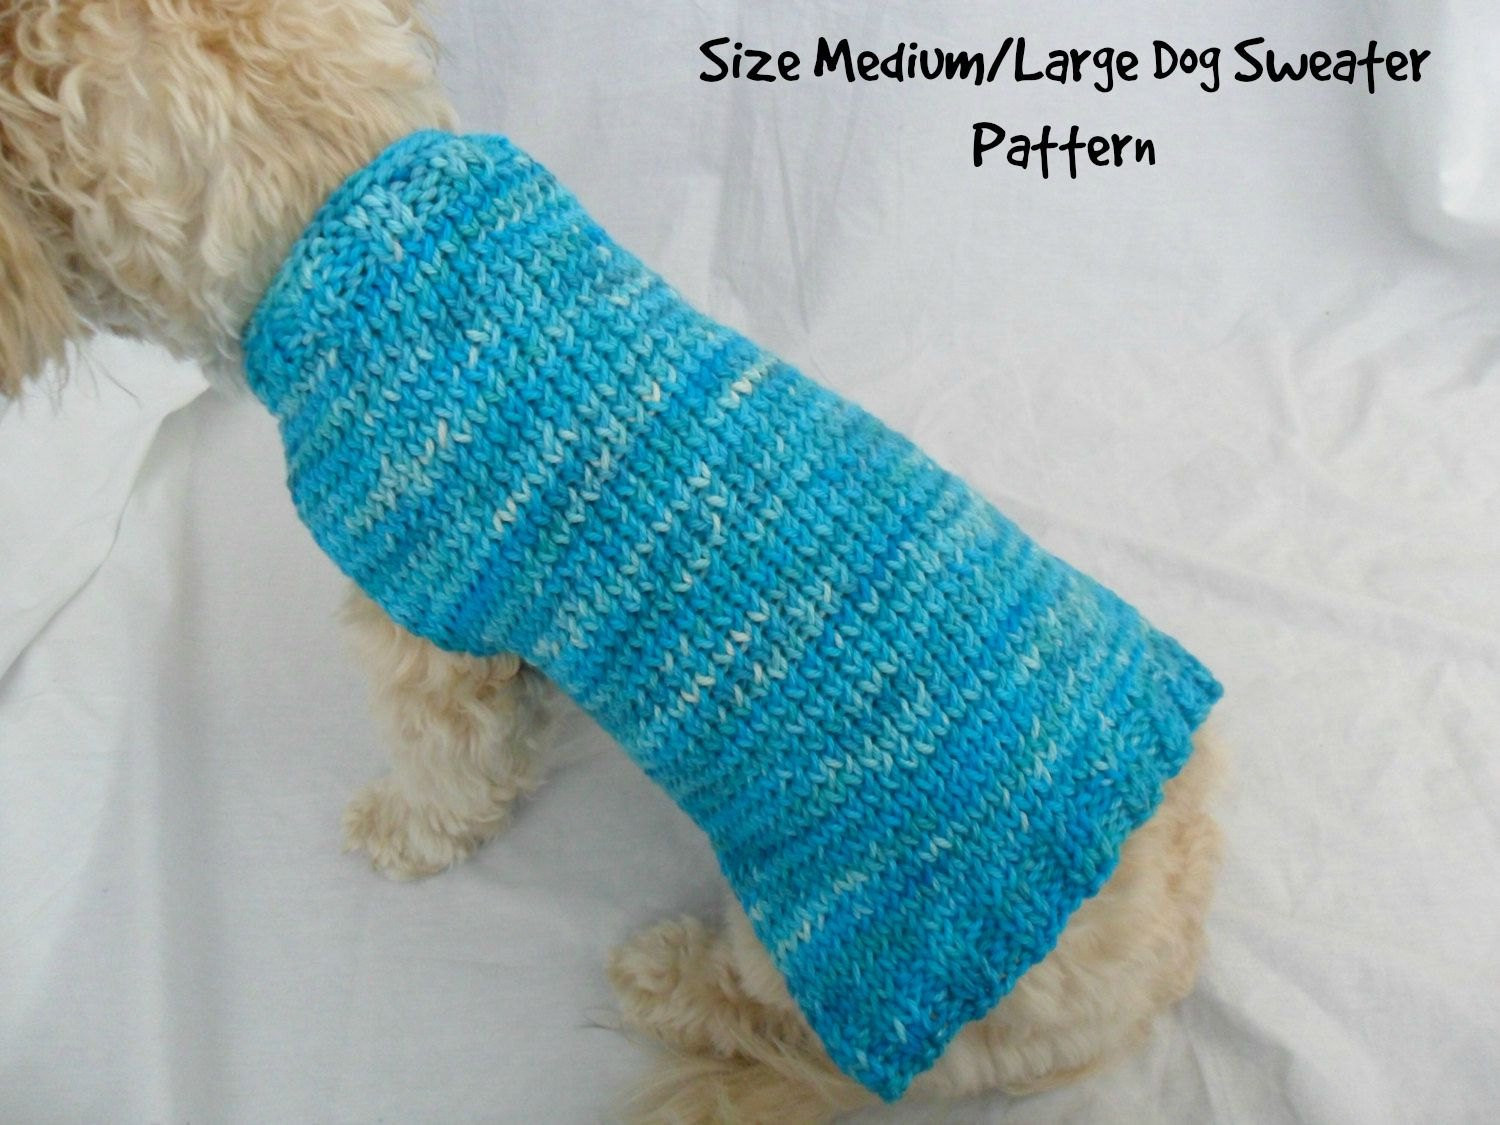 Dog Sweater Patterns Elegant Easy Dog Sweater Knitting Pattern for Medium and Large Dogs Of Unique 41 Photos Dog Sweater Patterns